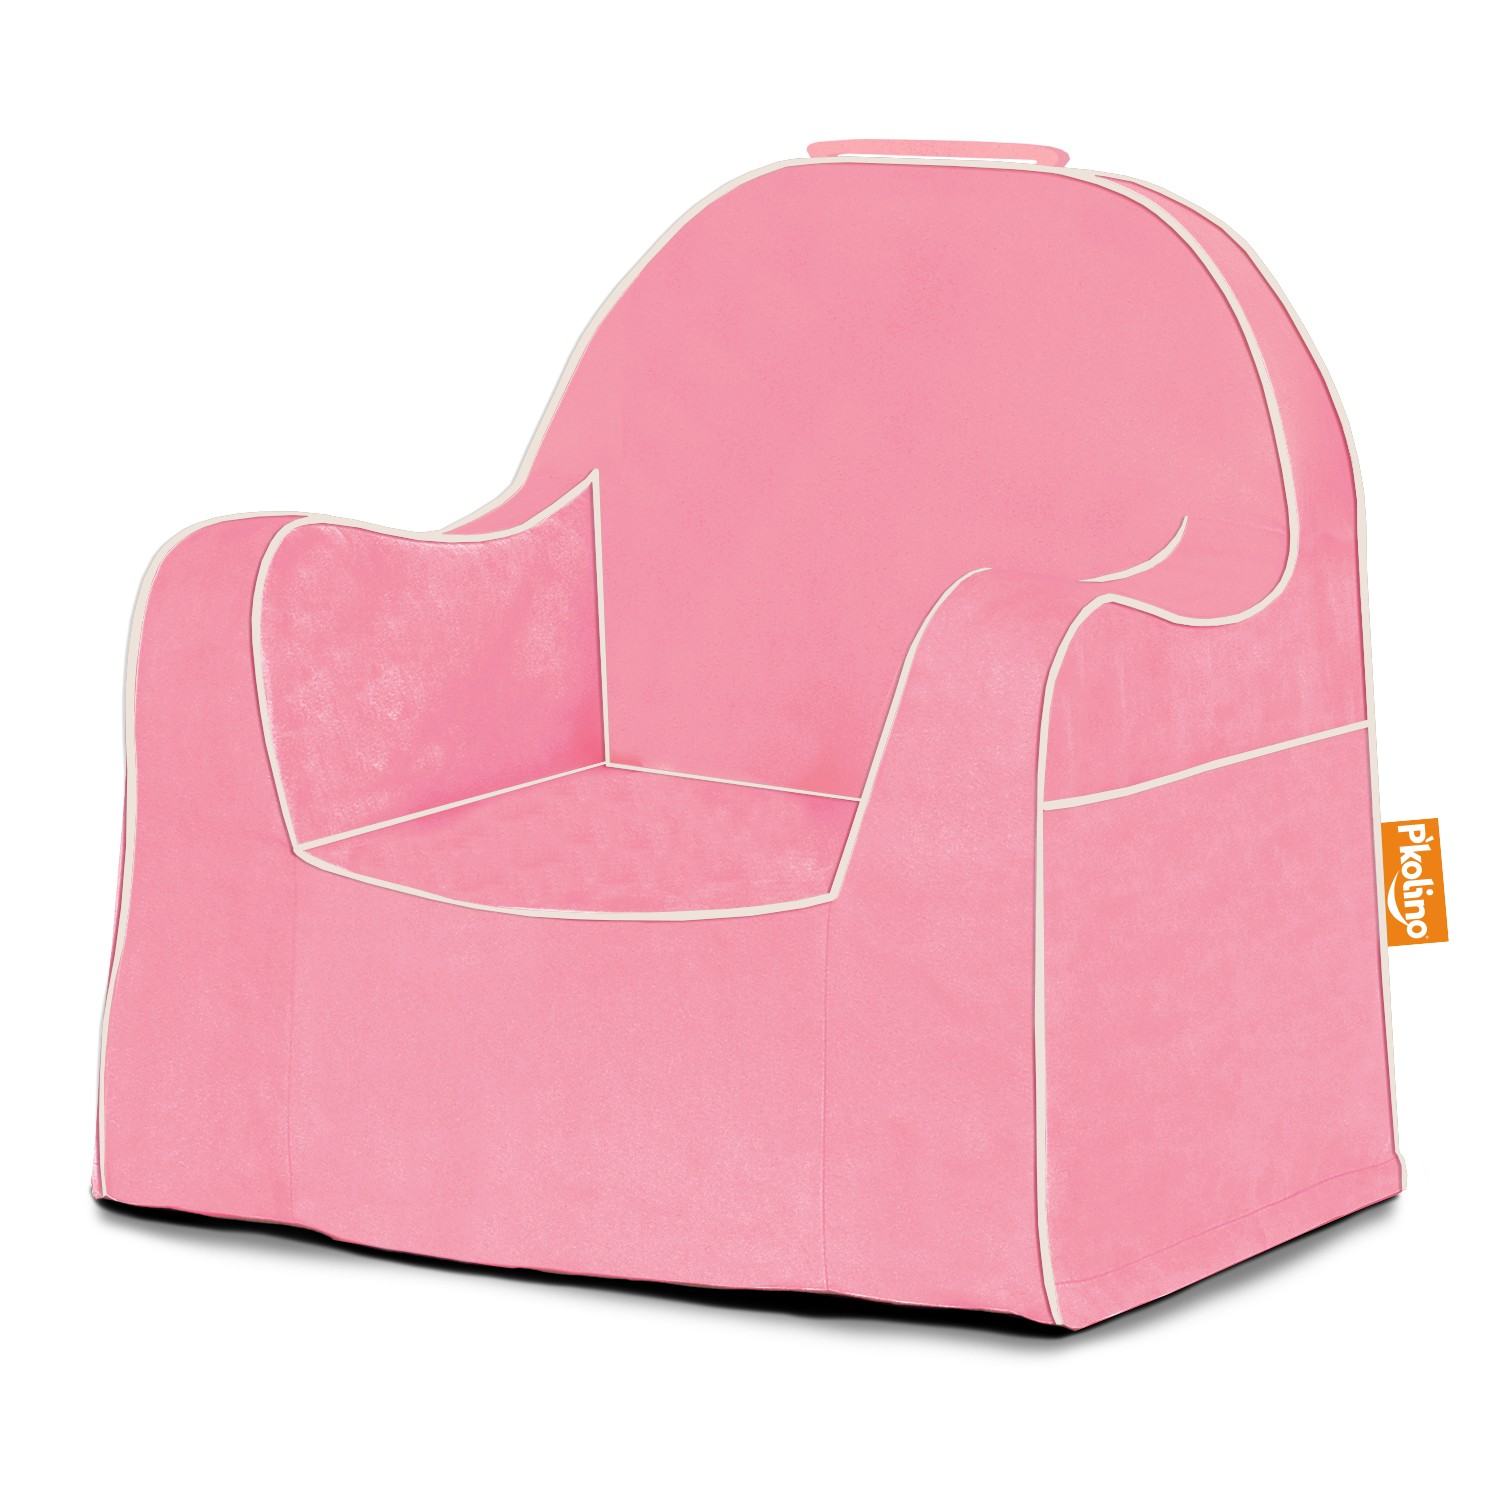 toddler chair - light pink with white piping - pkfflrslpk - pkolino TWTRDSC